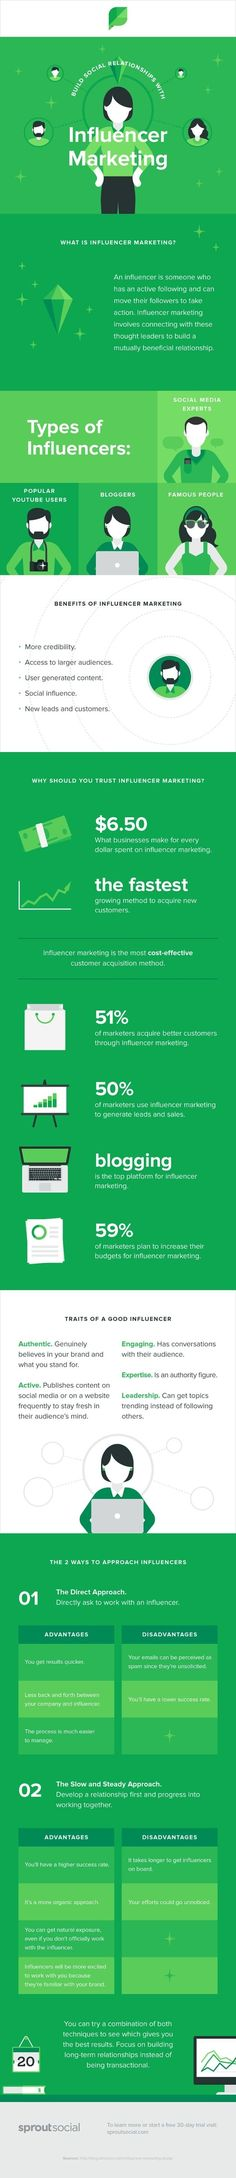 Build social relationships through influencer marketing. This infographic explains how.